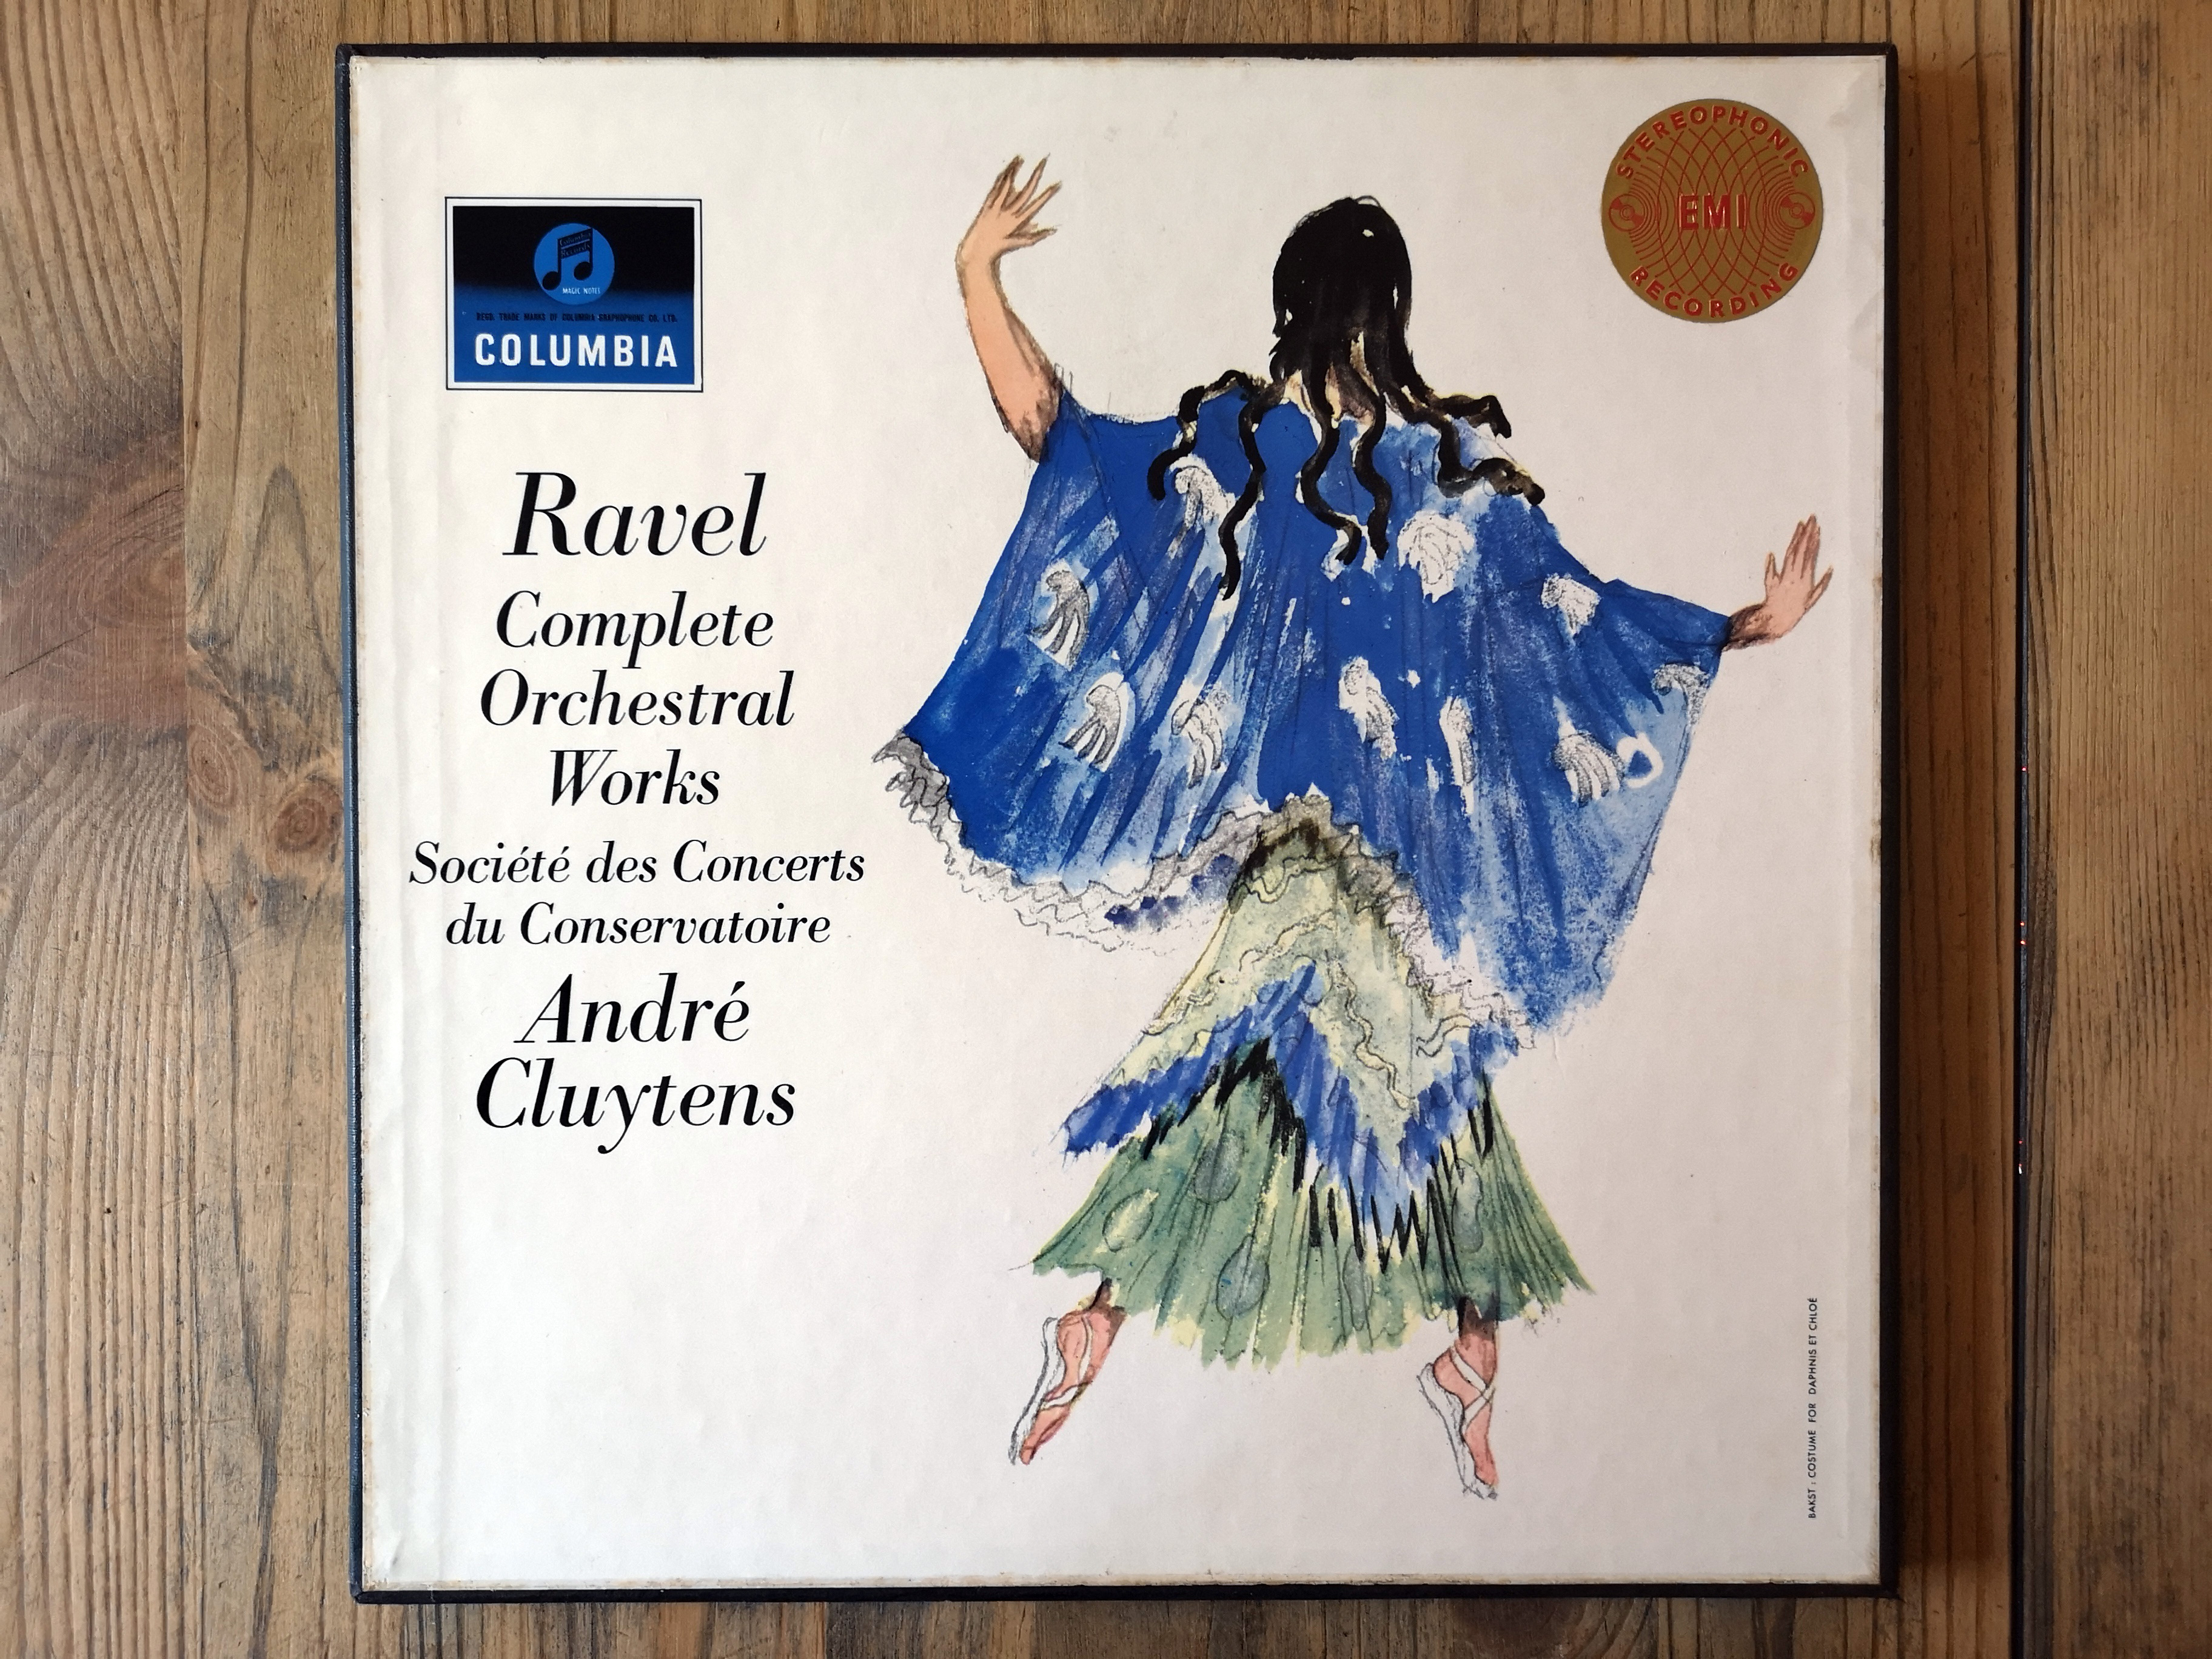 ERC061 - The Complete Orchestral Works of Maurice Ravel conducted by André Cluytens